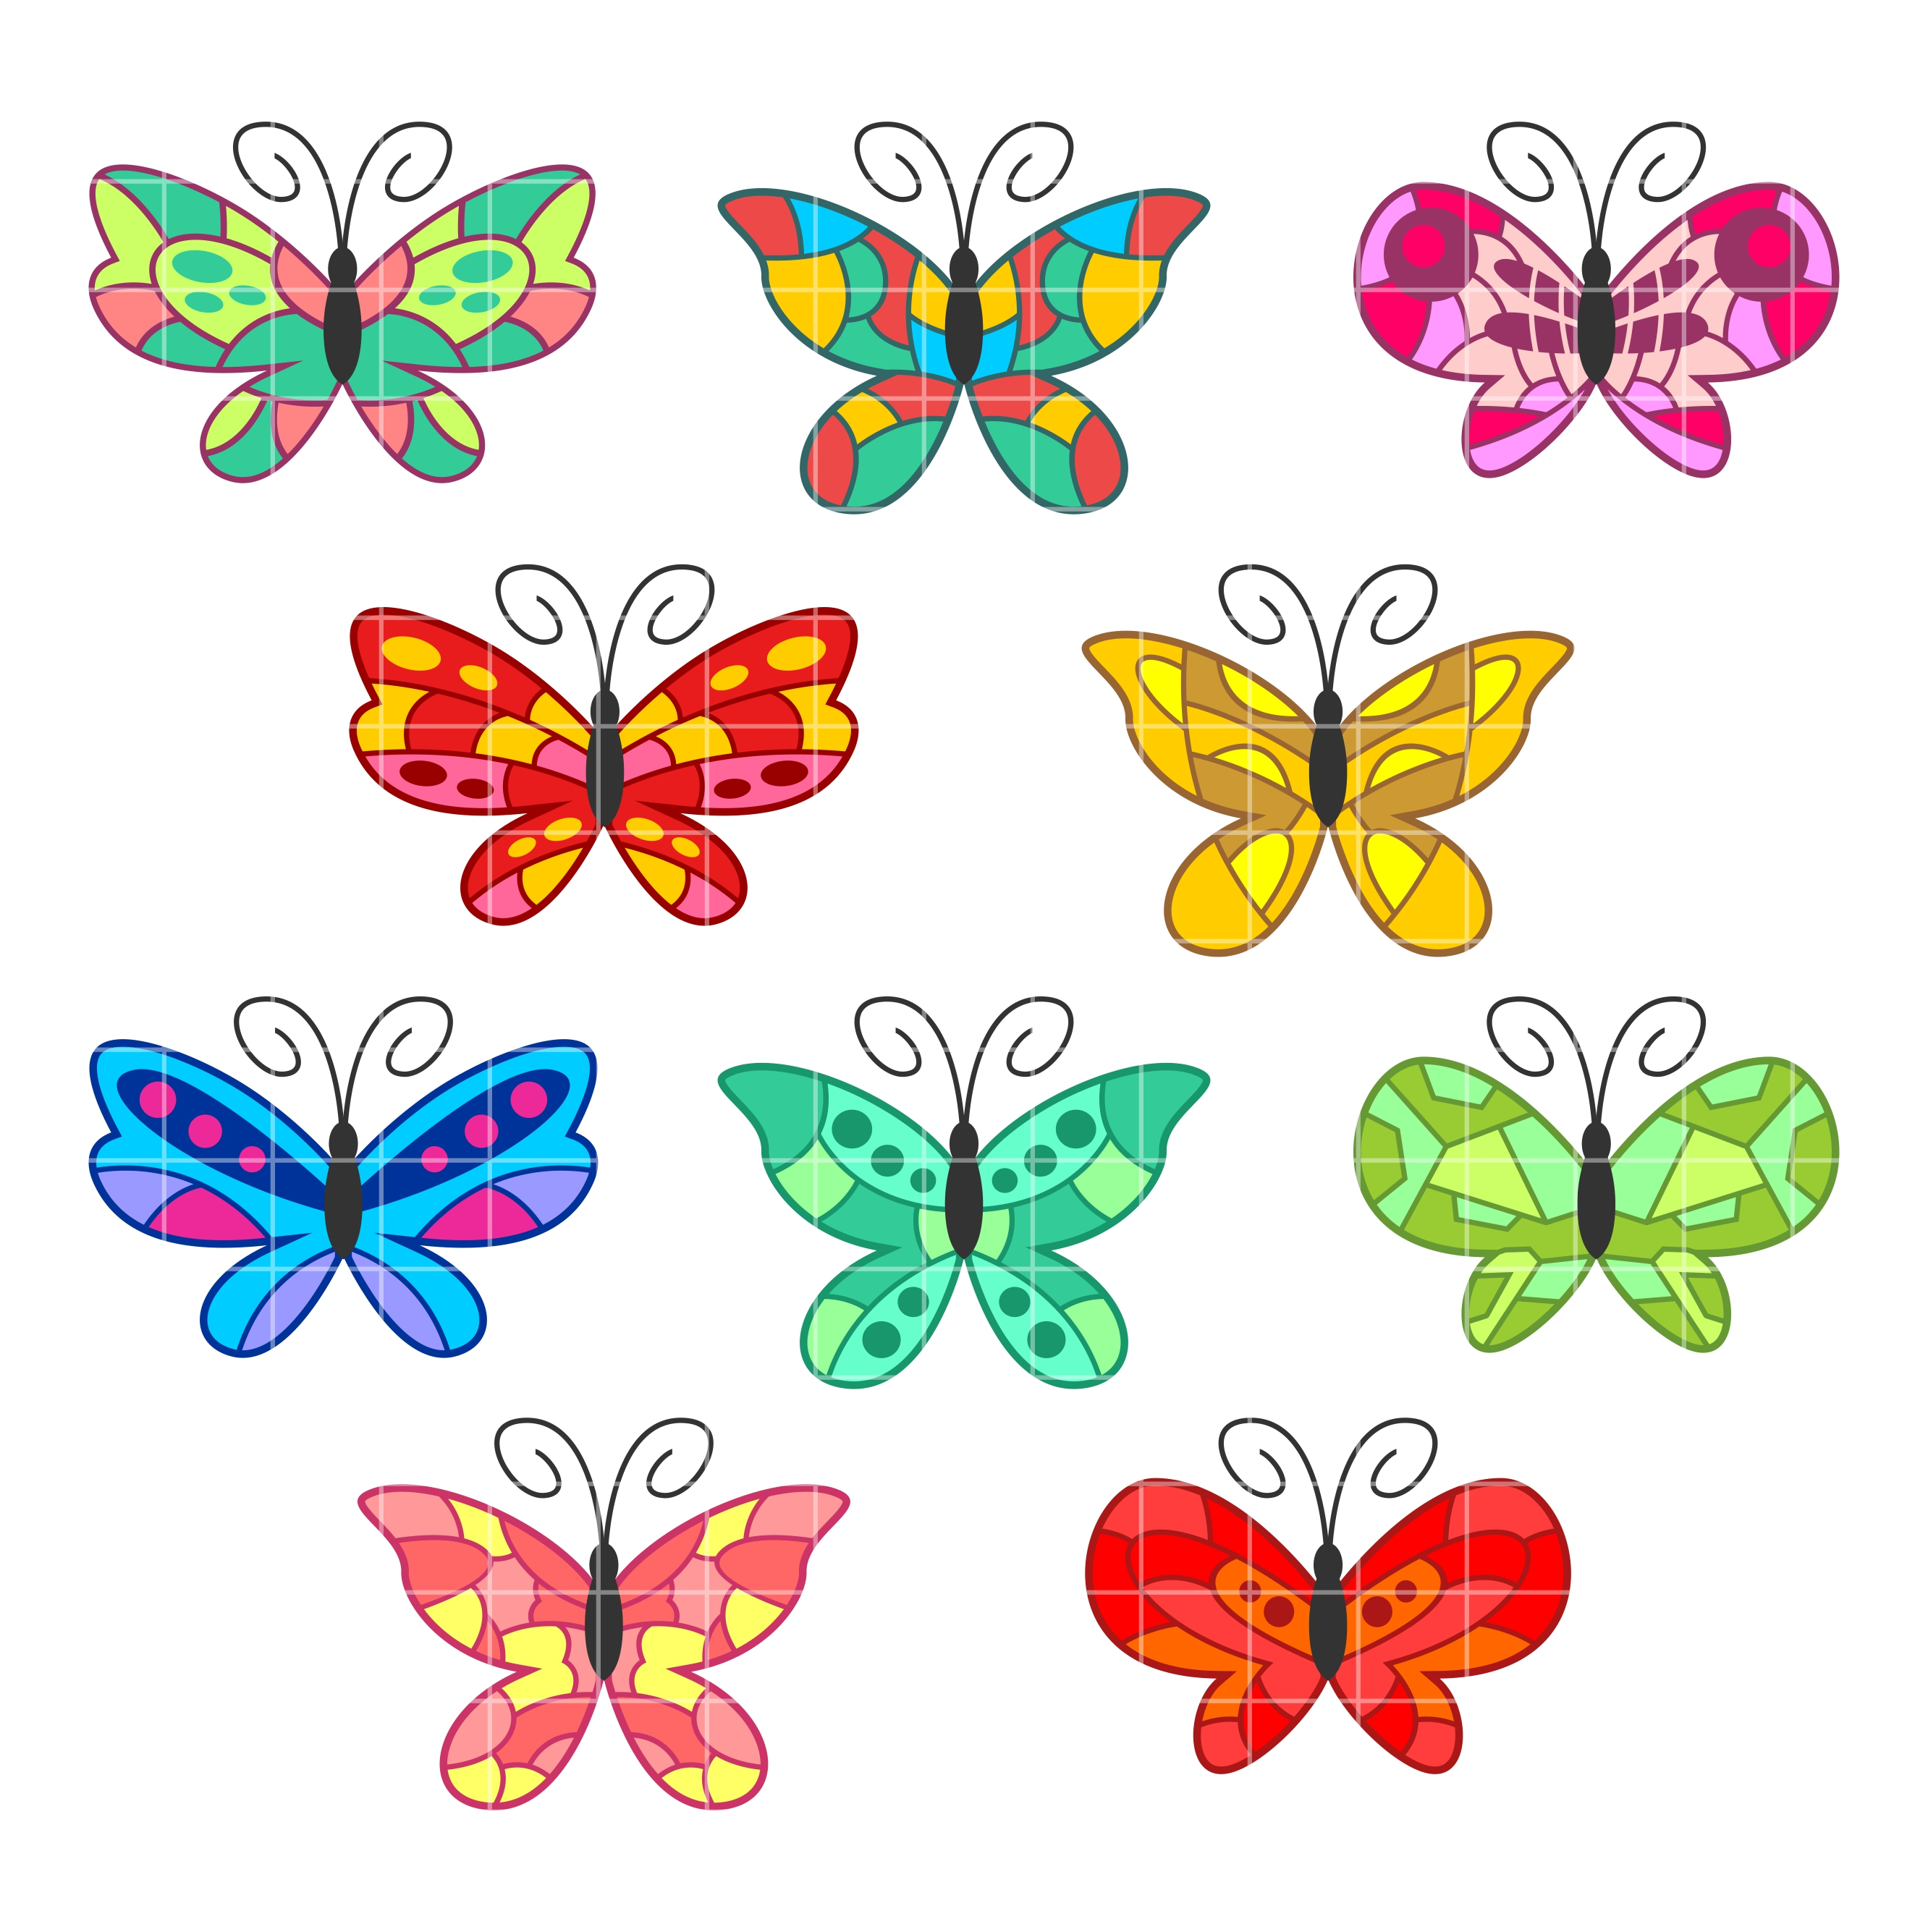 Butterflies colorful butterfly designs c-Butterflies colorful butterfly designs clipart clipartall-13